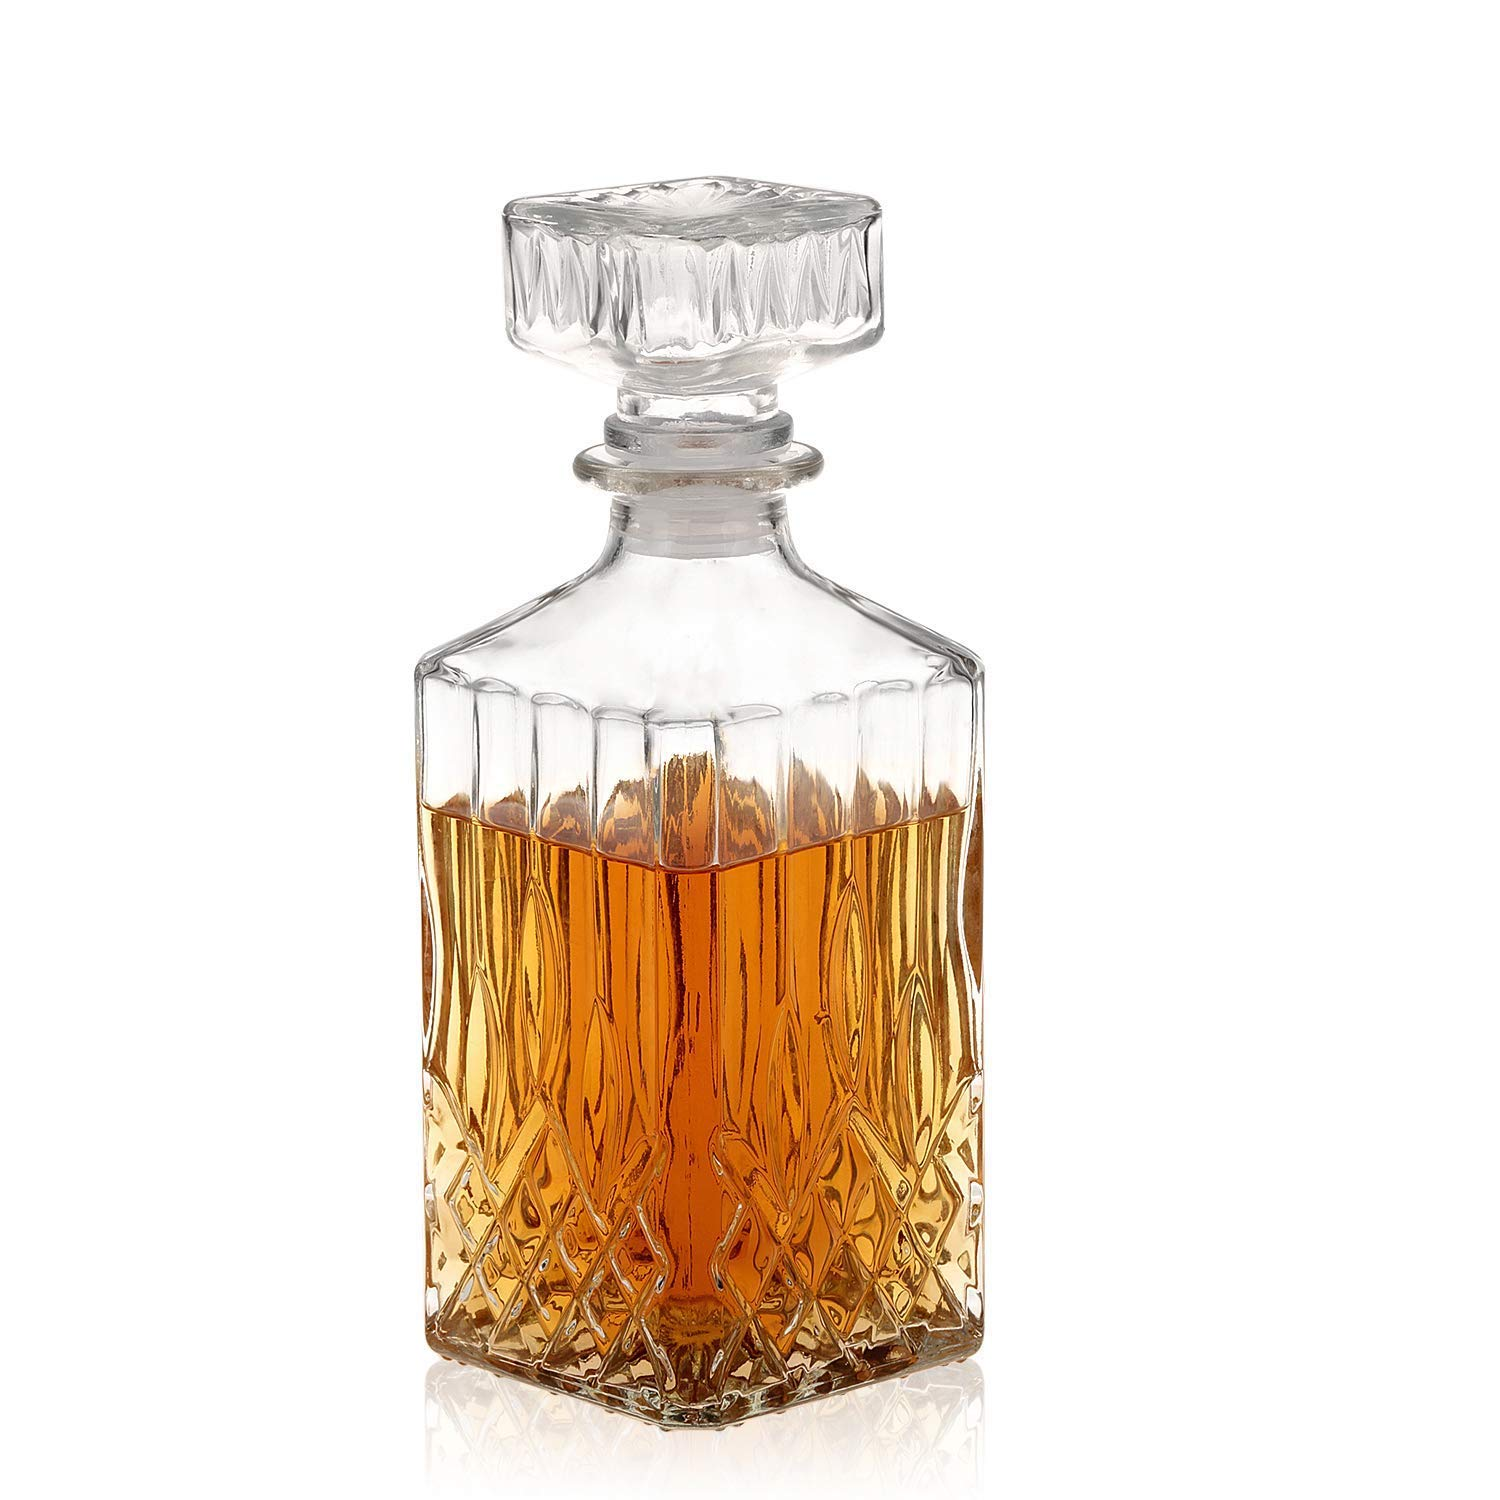 Decanter, Whiskey Decanter, Lead-Free Liquor Decanter 750ml, Glass Decanters For Alcohol by Nakcase decanter